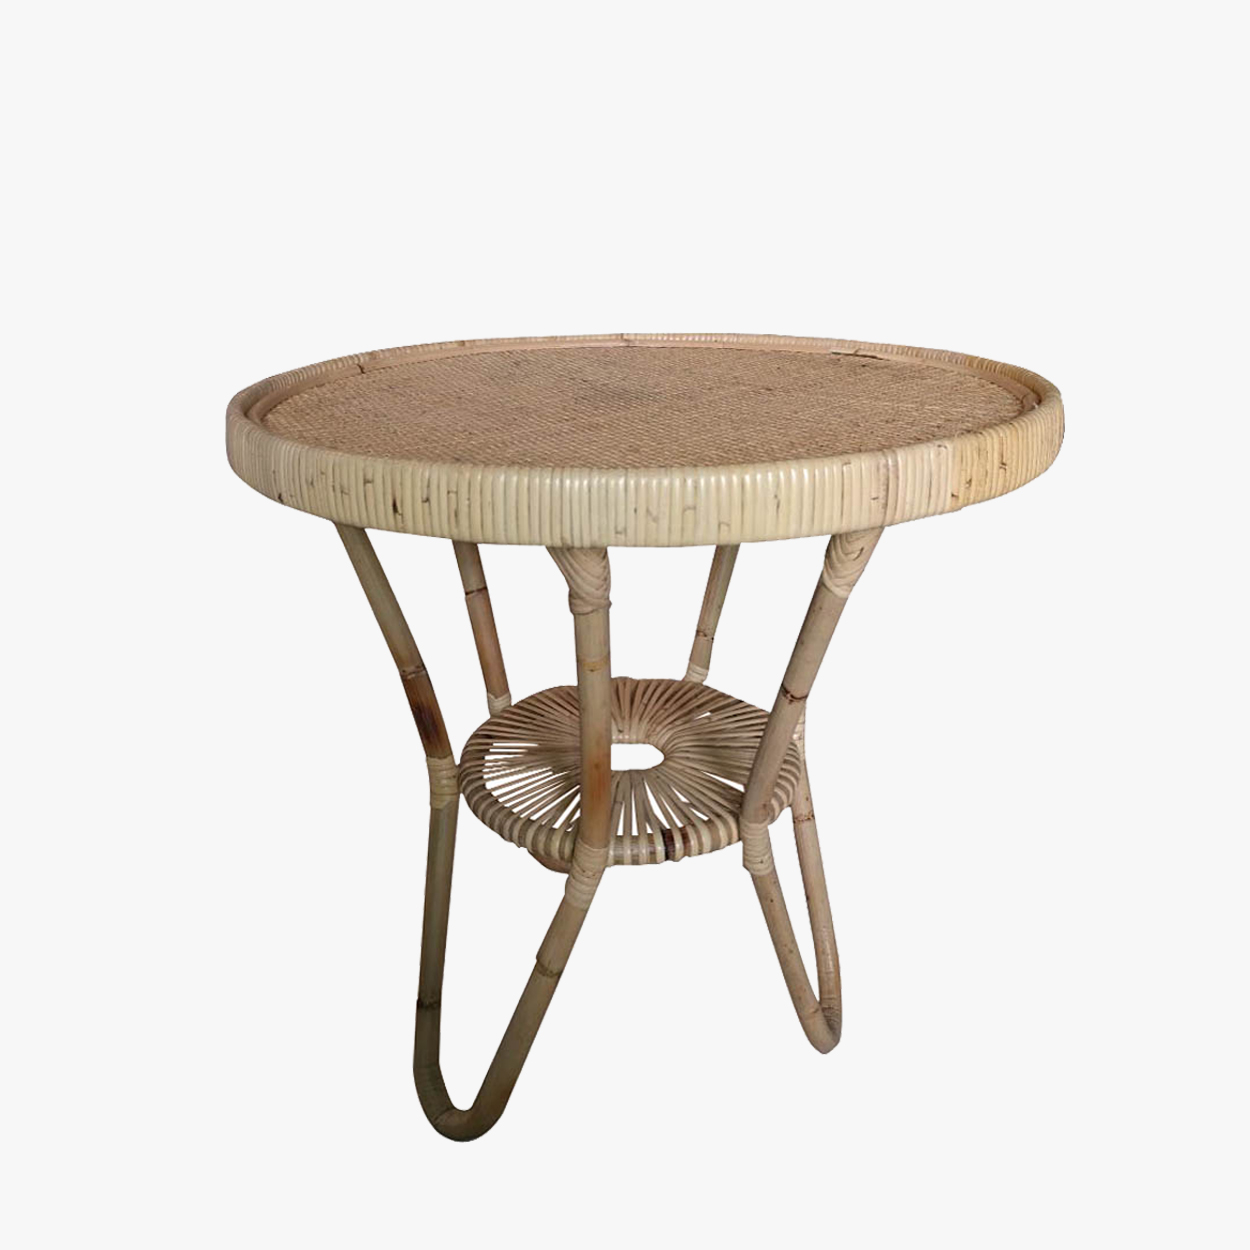 justina blakeney libra side table accent tables dear keaton small under geometric lamp gold bedroom accessories coffee decor fruit cocktail recipe dining room legs wood white with